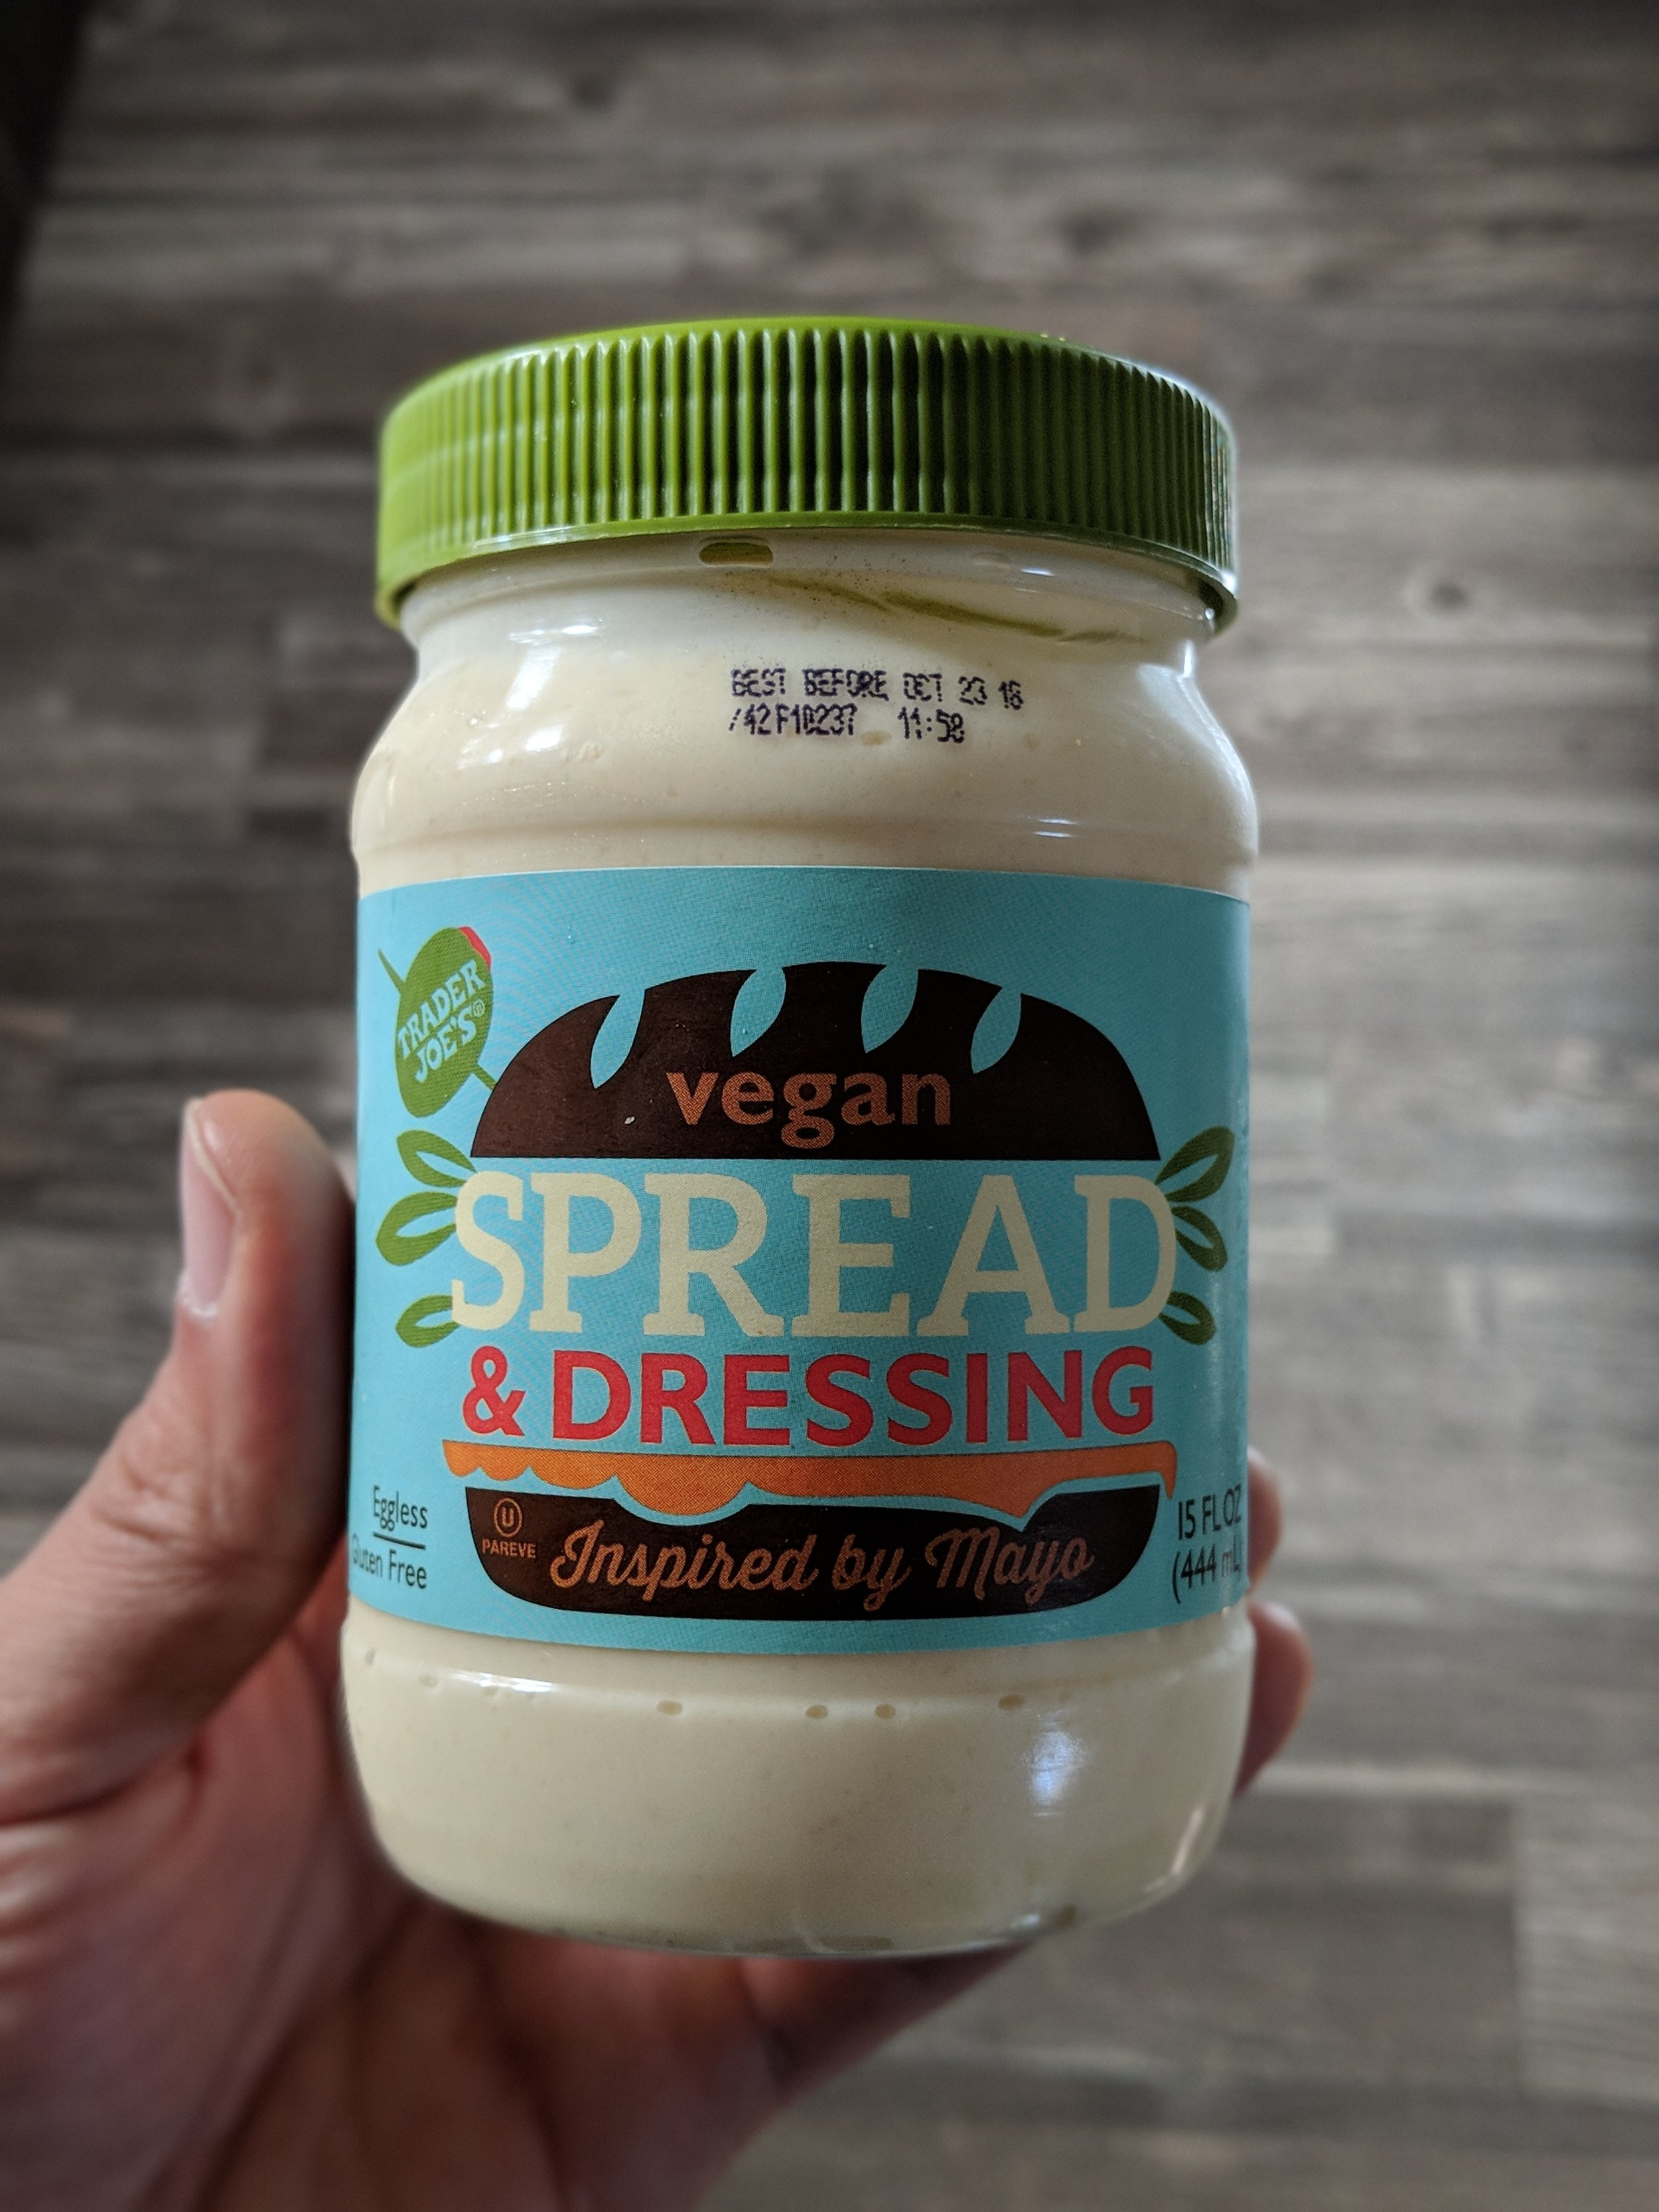 Vegan Mayo - Used to make sauces and aioli. Mix it with Smoked Paprika to add extra flavor to tacos and burritos.